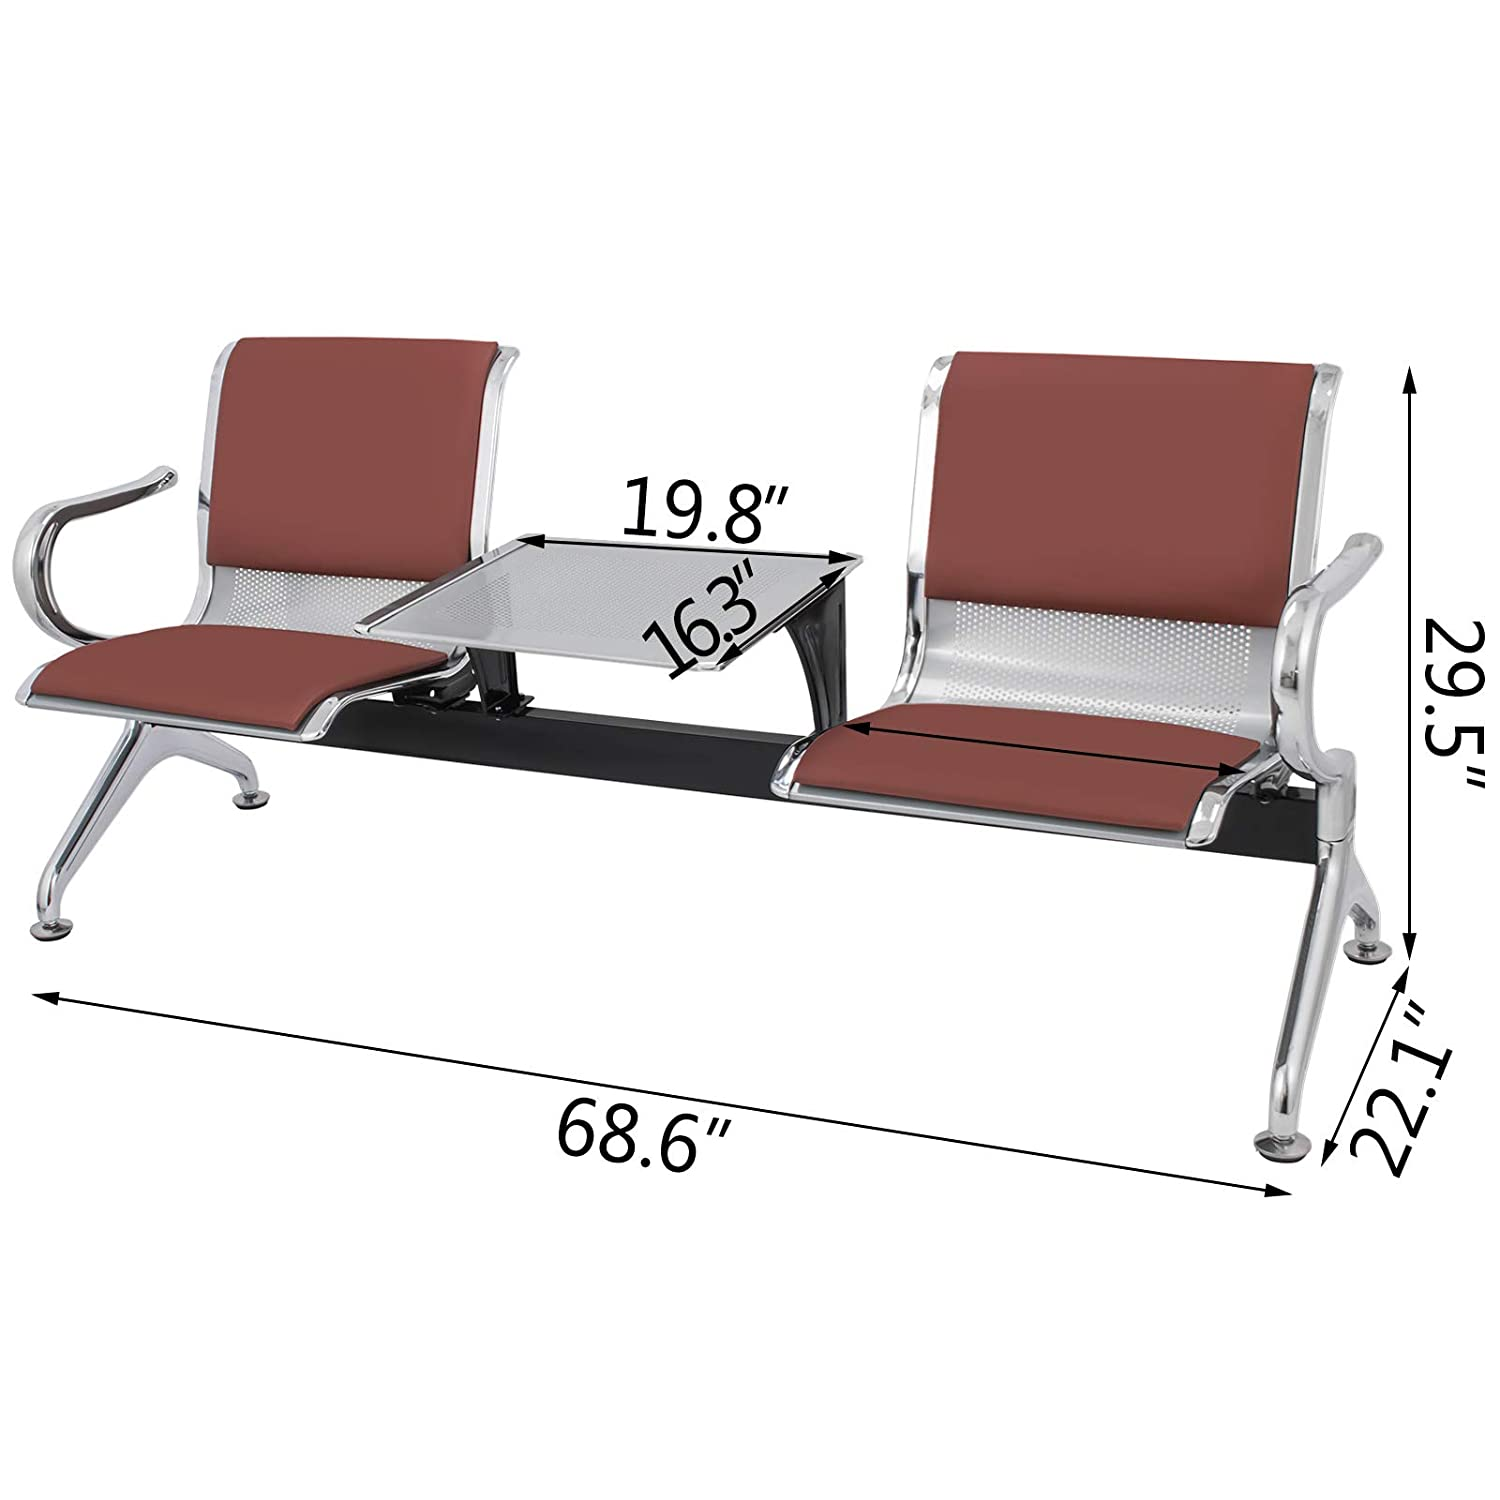 VEVOR Waiting Room Chairs with Table 2 Seat PU Leather Business Reception Bench Waiting Chairs for Office Barbershop Salon Airport Bank Hospital ...